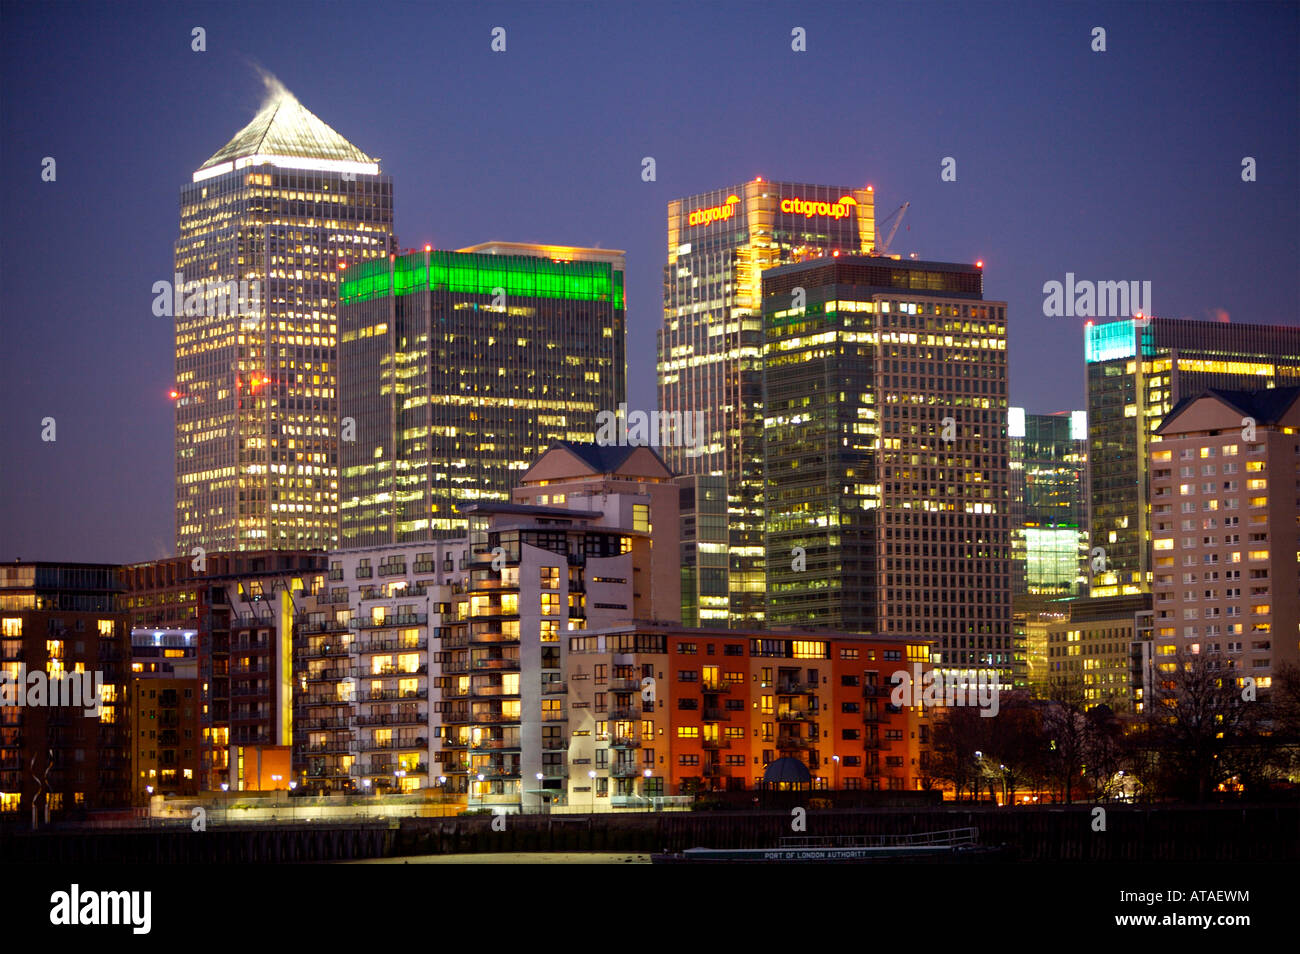 Canary Wharf, Docklands, London - Stock Image